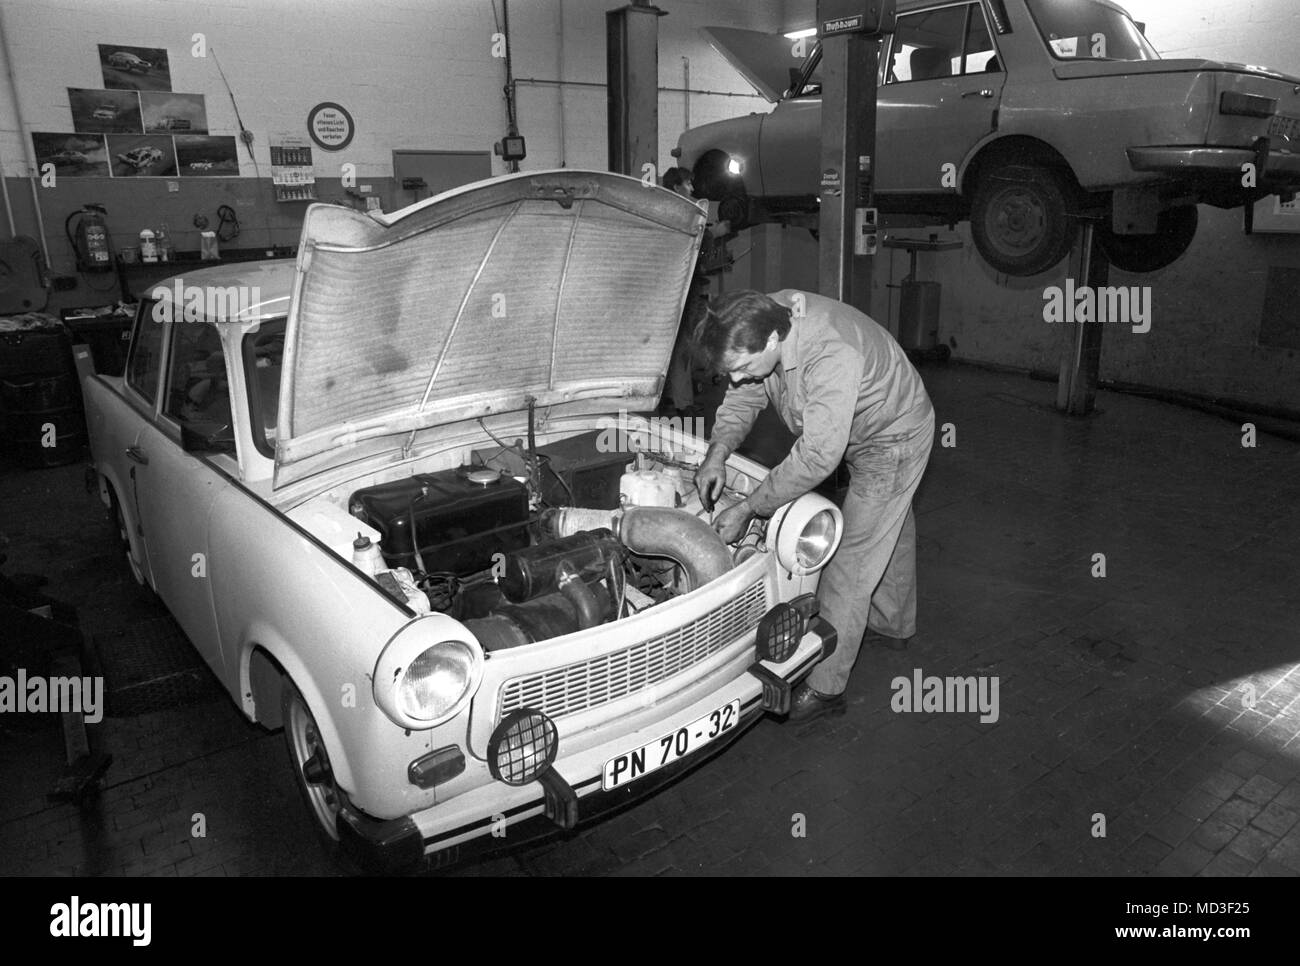 A Car Mechanic Black and White Stock Photos & Images - Alamy